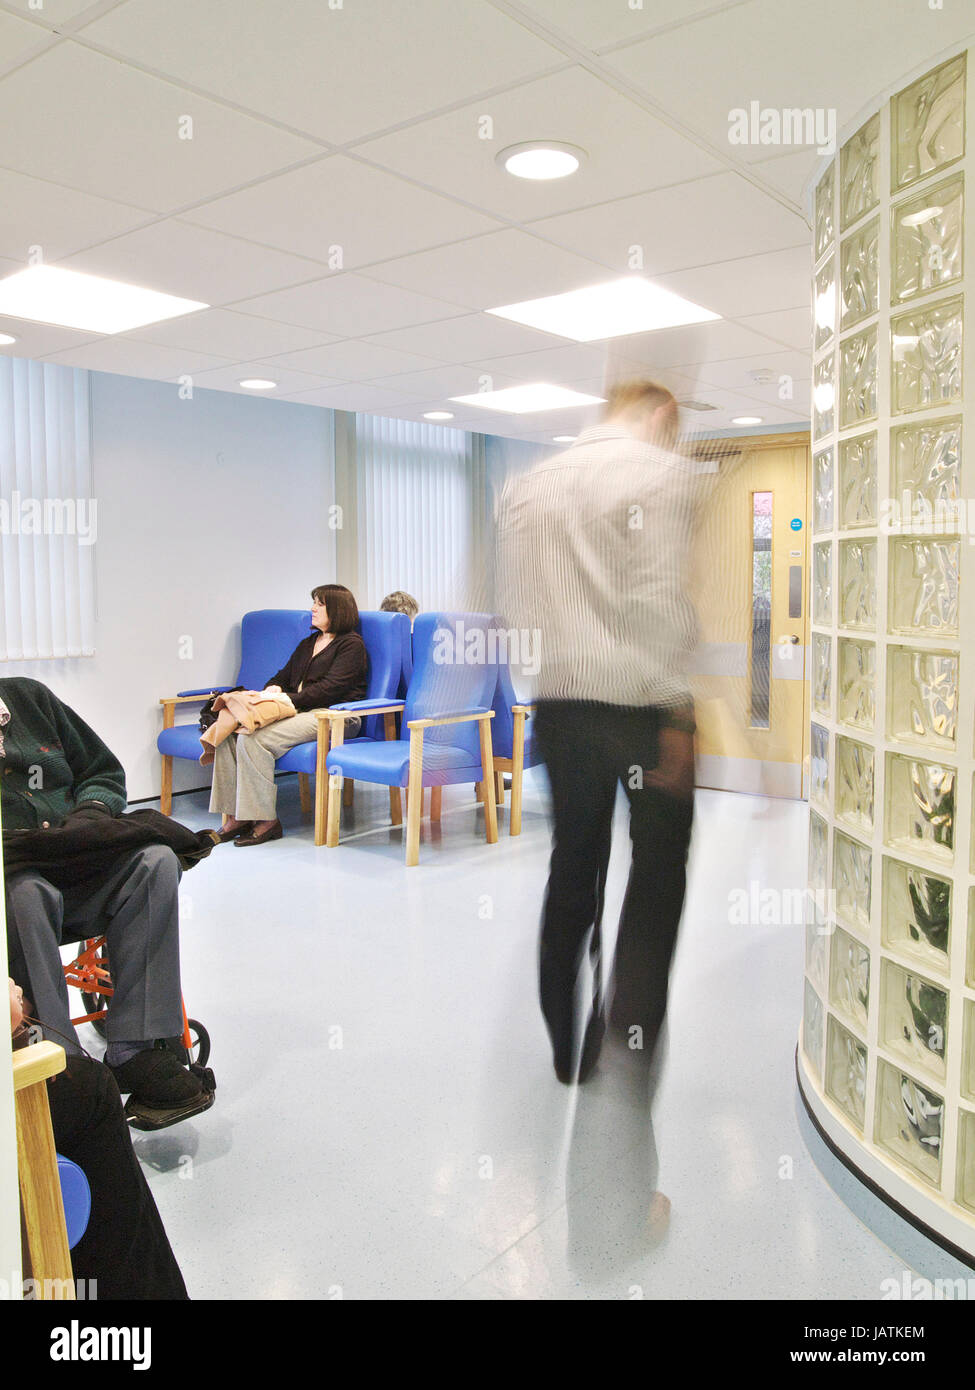 Patients sitting in NHS hospital waiting area, as a doctor walks through the frame, blurred through movement - Stock Image